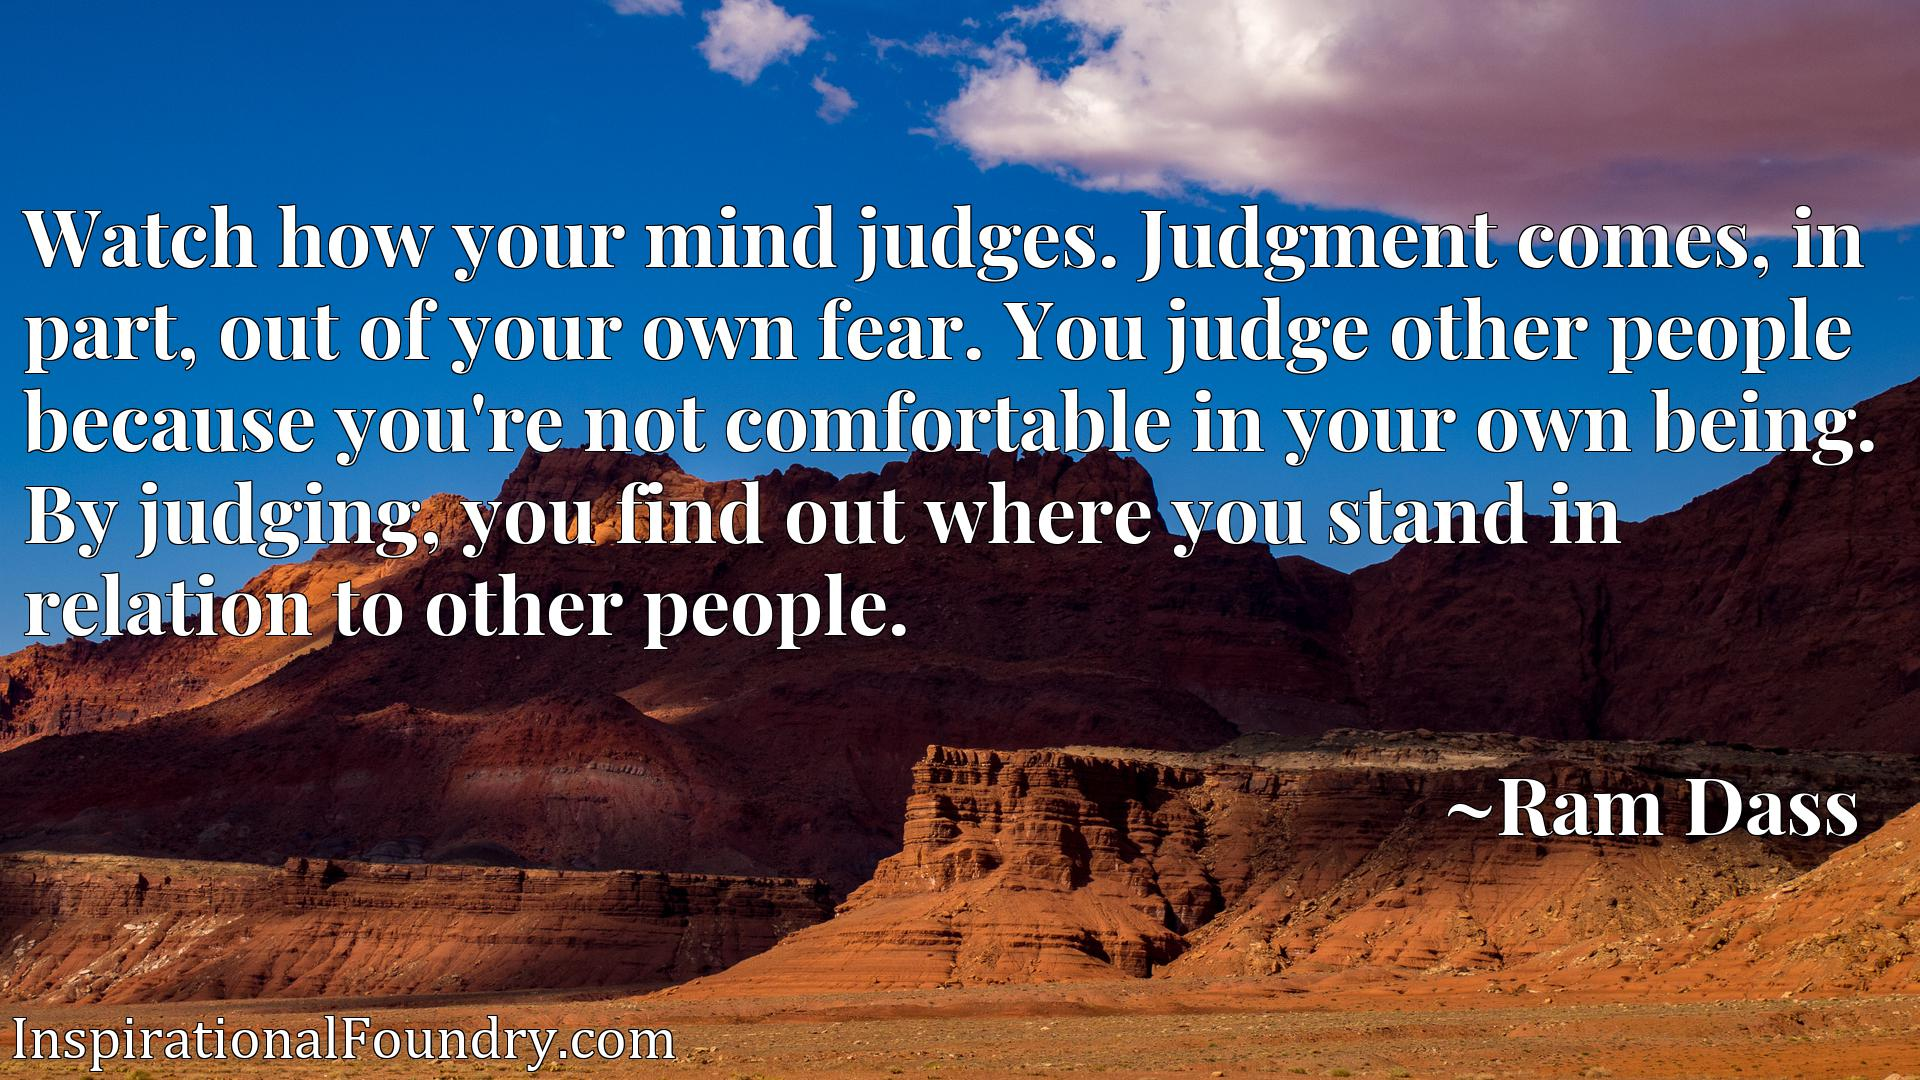 Watch how your mind judges. Judgment comes, in part, out of your own fear. You judge other people because you're not comfortable in your own being. By judging, you find out where you stand in relation to other people.